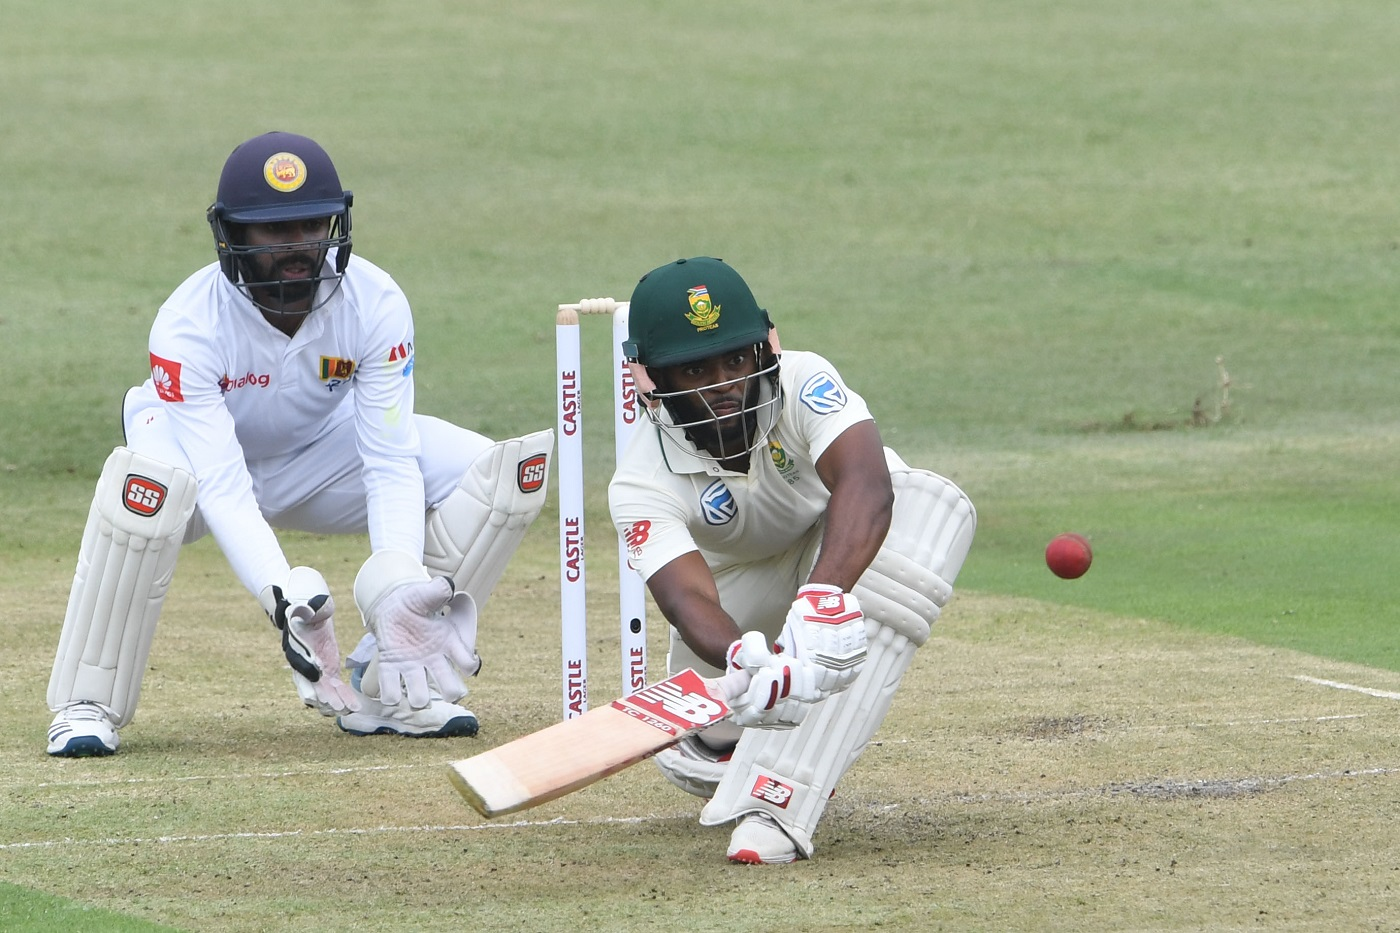 South Africa vs Sri Lanka 1st Test Day 1 Highlight